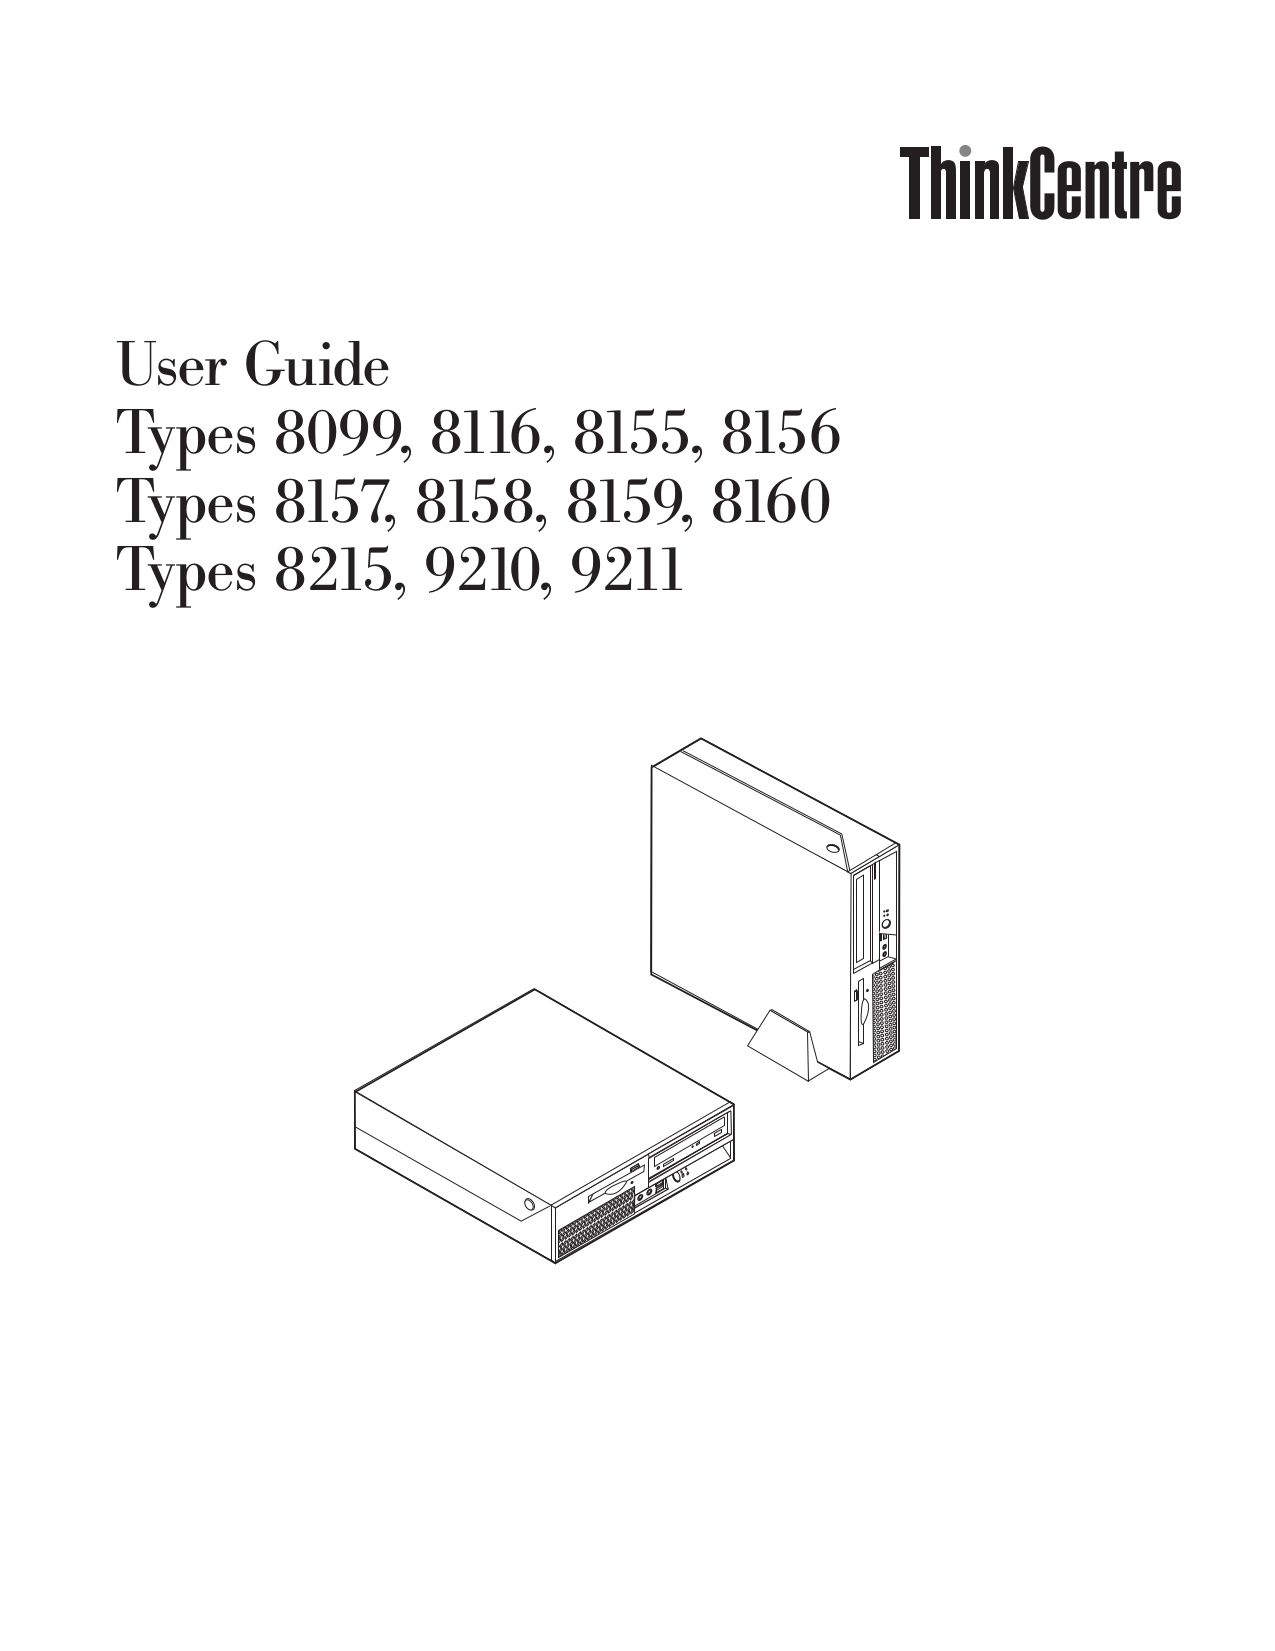 pdf for Lenovo Desktop ThinkCentre M52 8099 manual